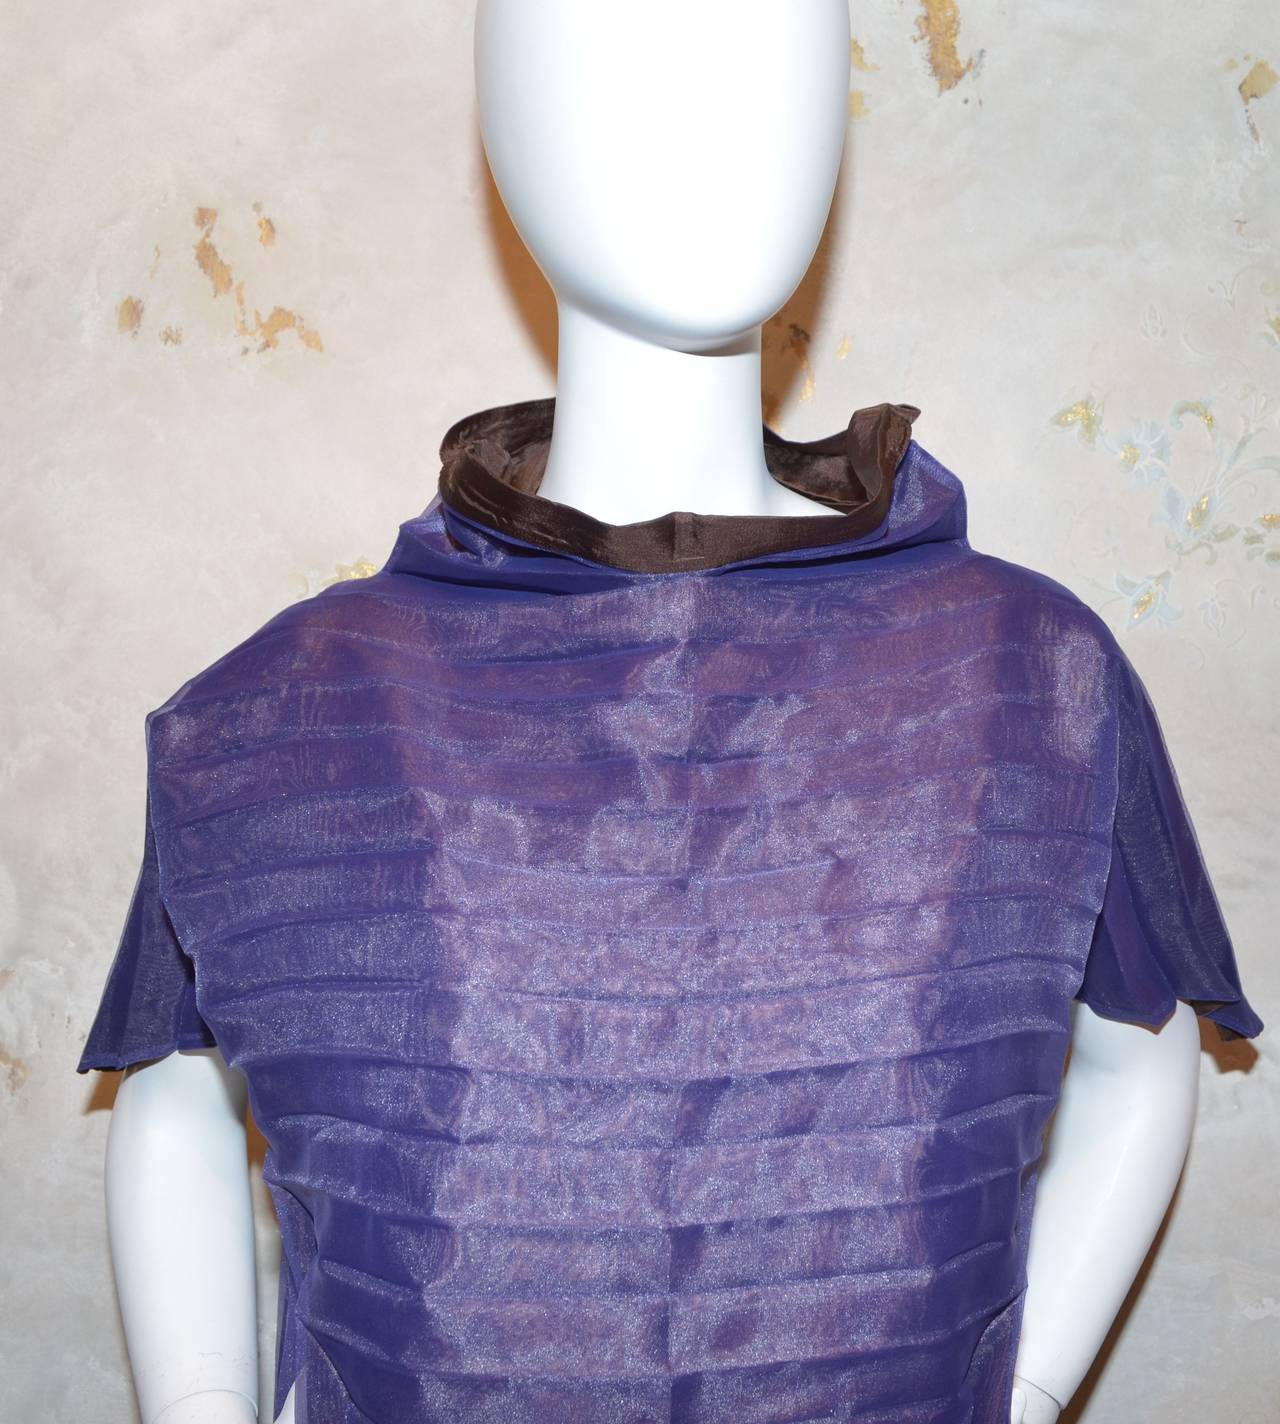 Issey Miyake Purple Pleated Origami A-Line Dress In Excellent Condition For Sale In Carmel by the Sea, CA